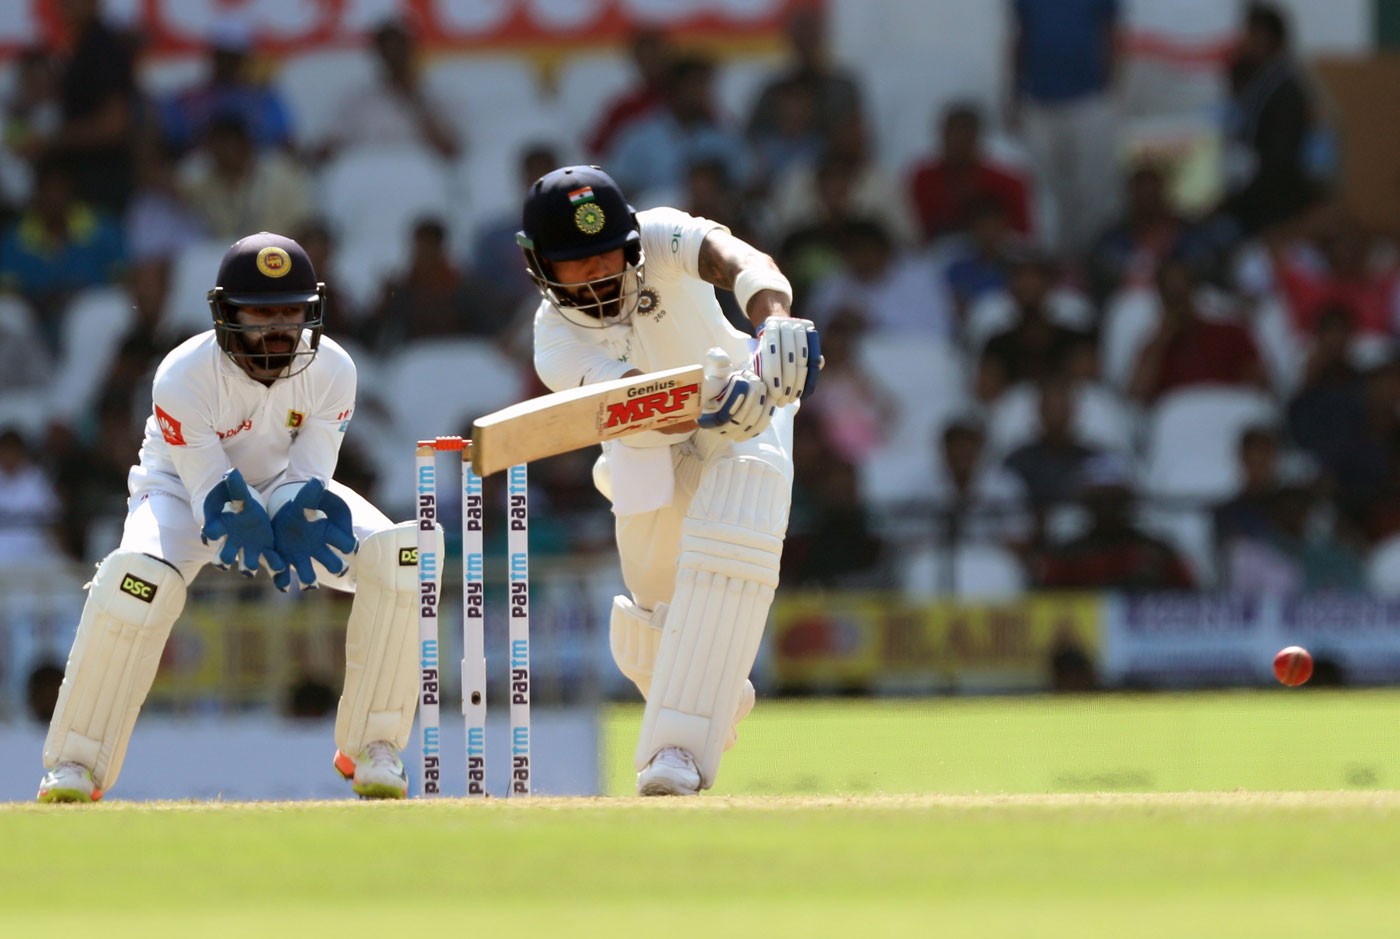 IND vs SL 2nd Test: List Of Records Broken By Virat Kohli During His 213-Run Knock